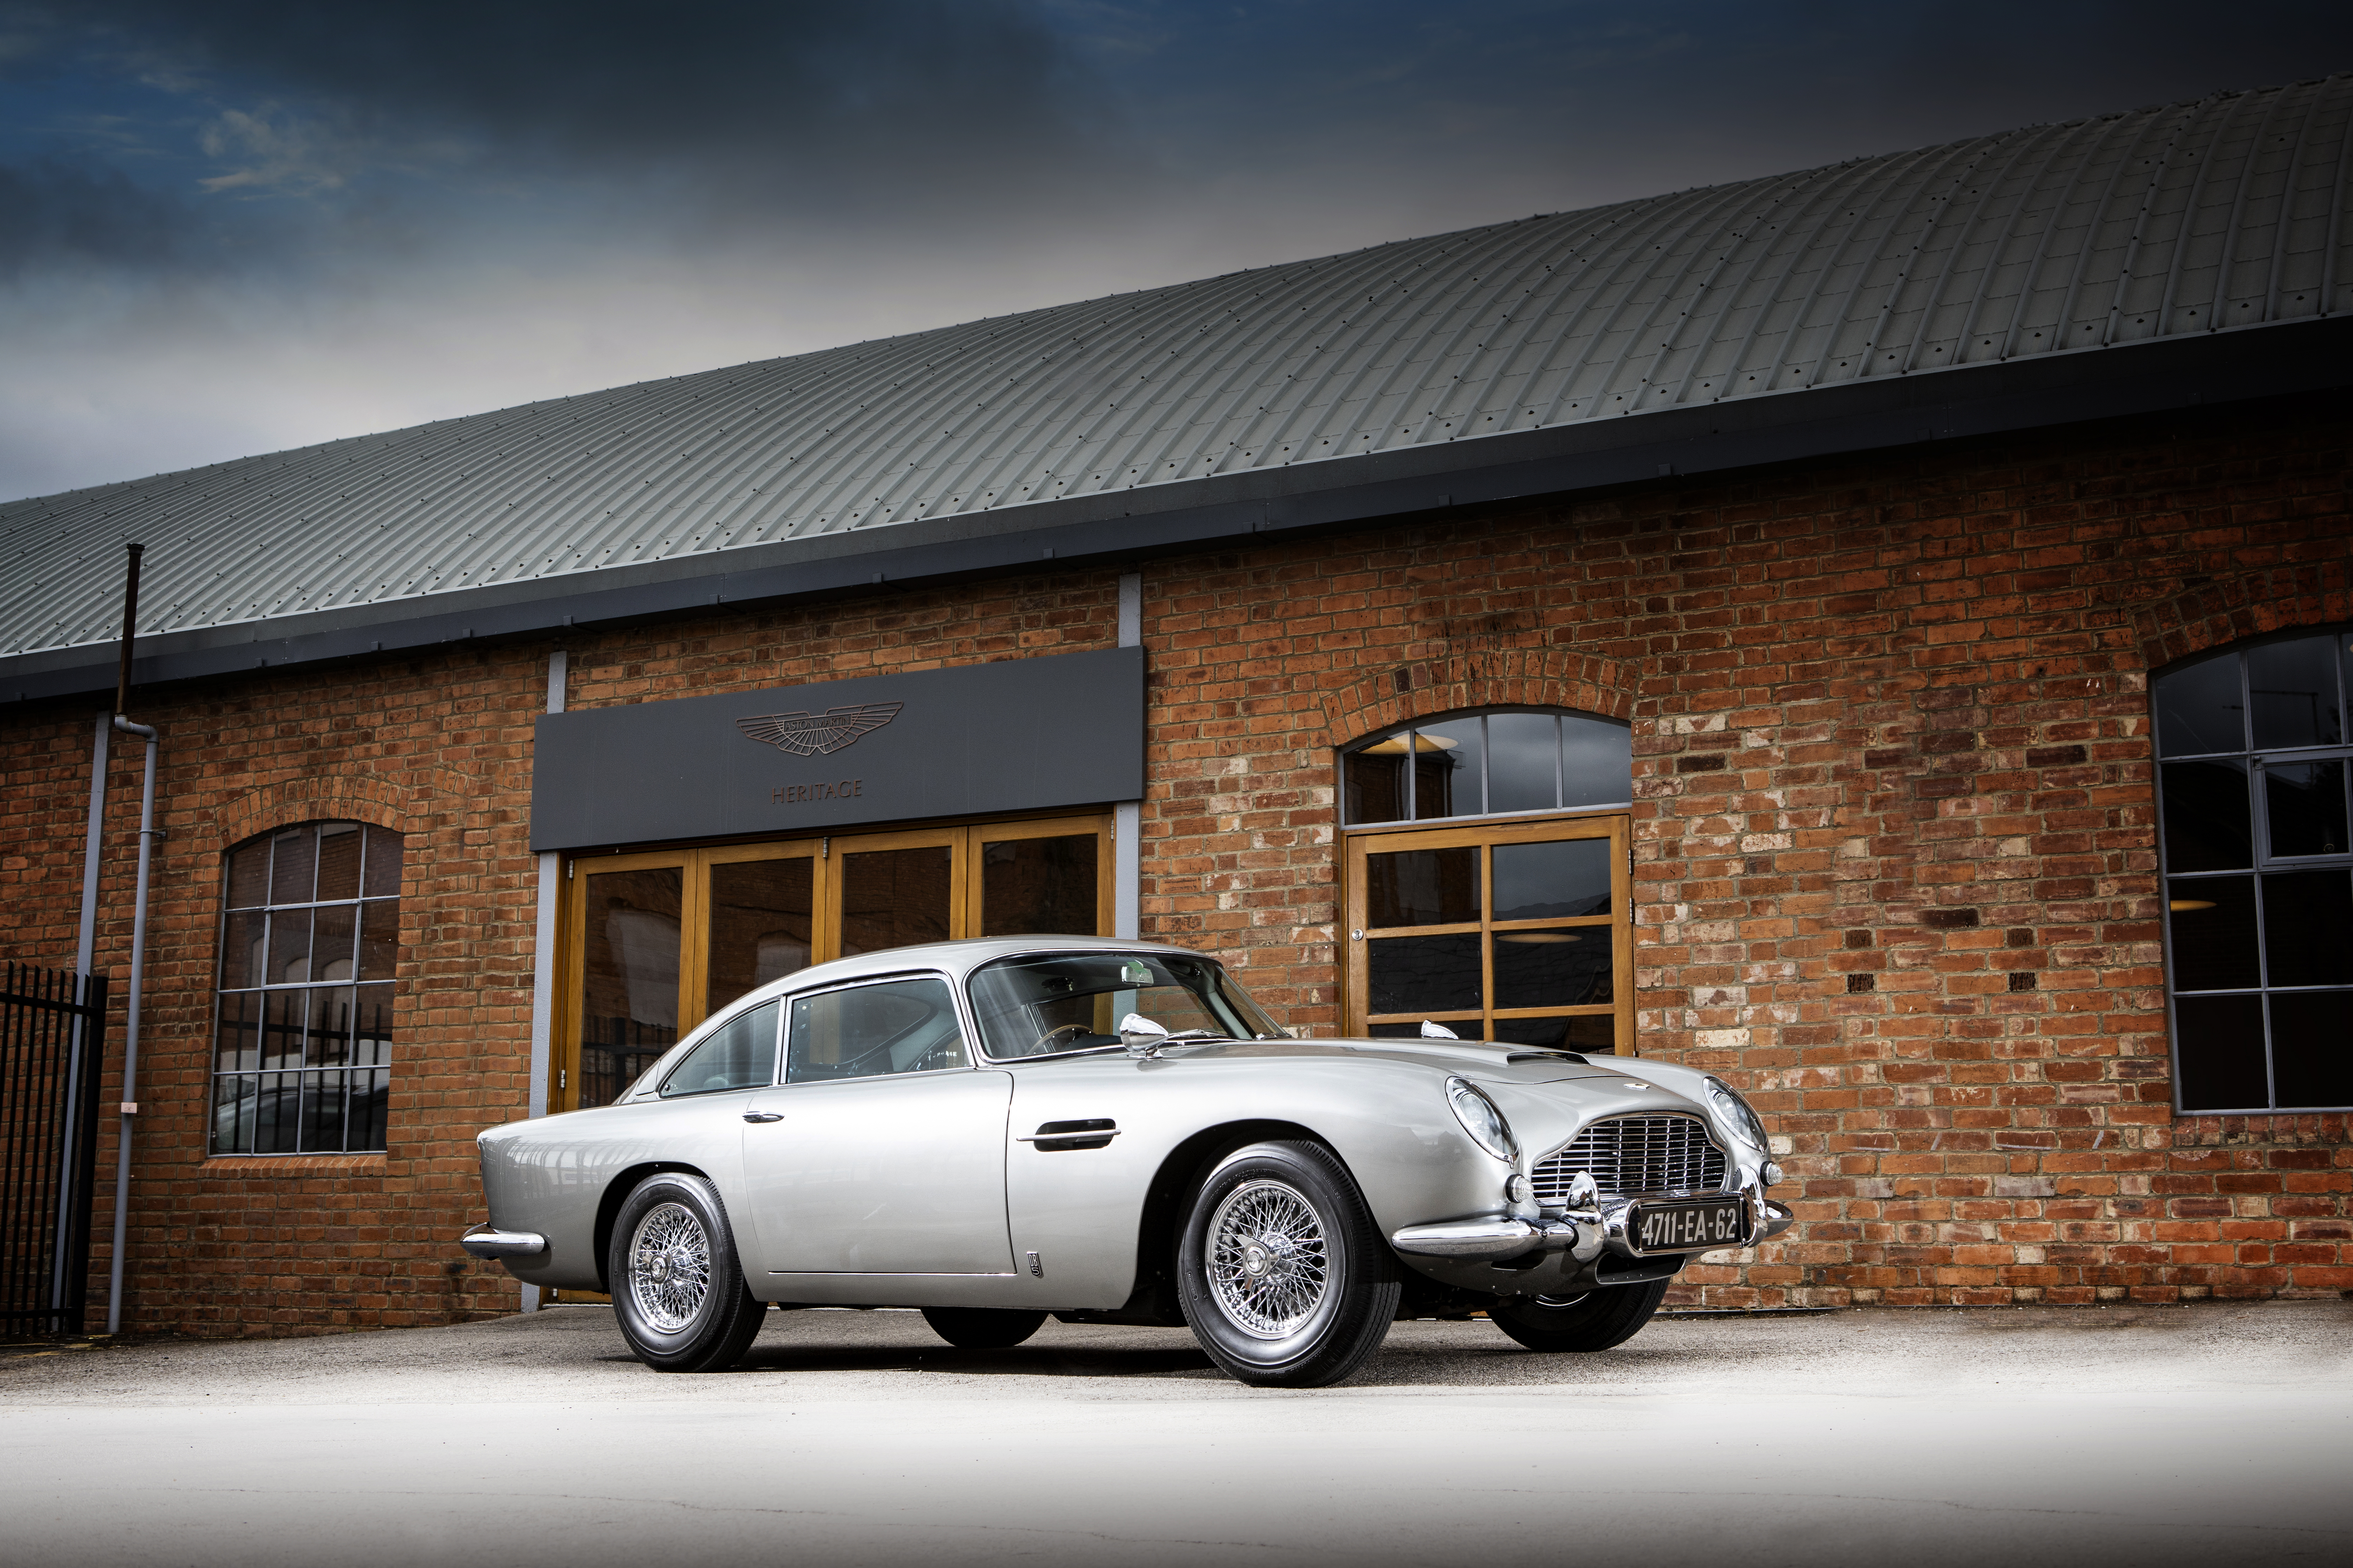 The DB5 is one of the most iconic Aston Martins of all time